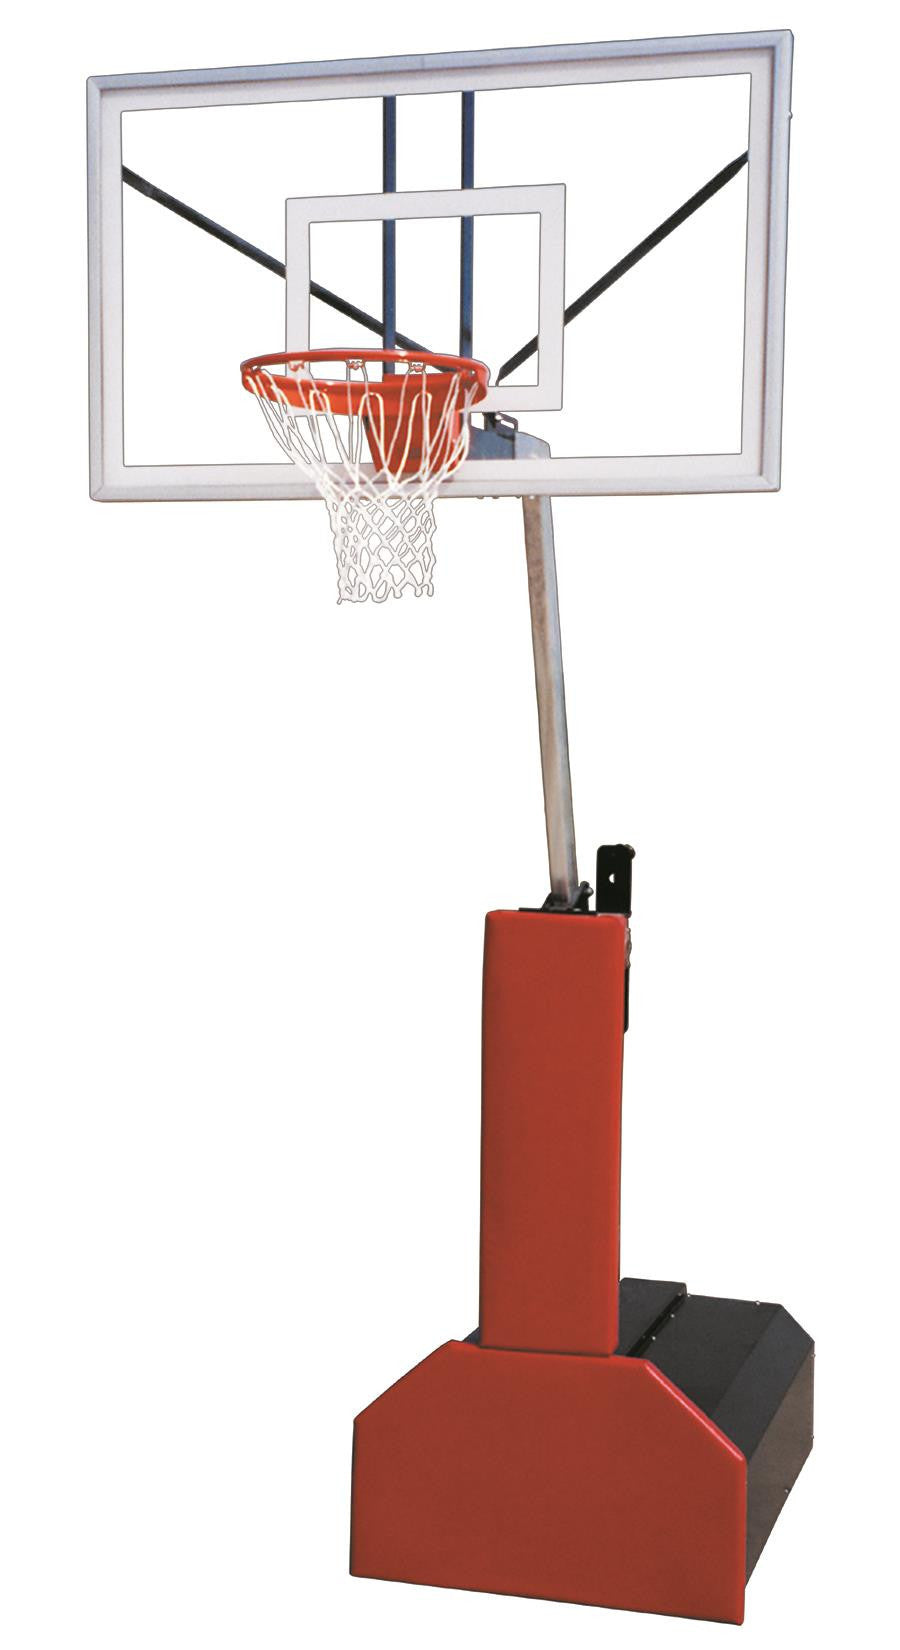 First Team Thunder Select Portable Adjustable Basketball Hoop 60 inch Acrylic